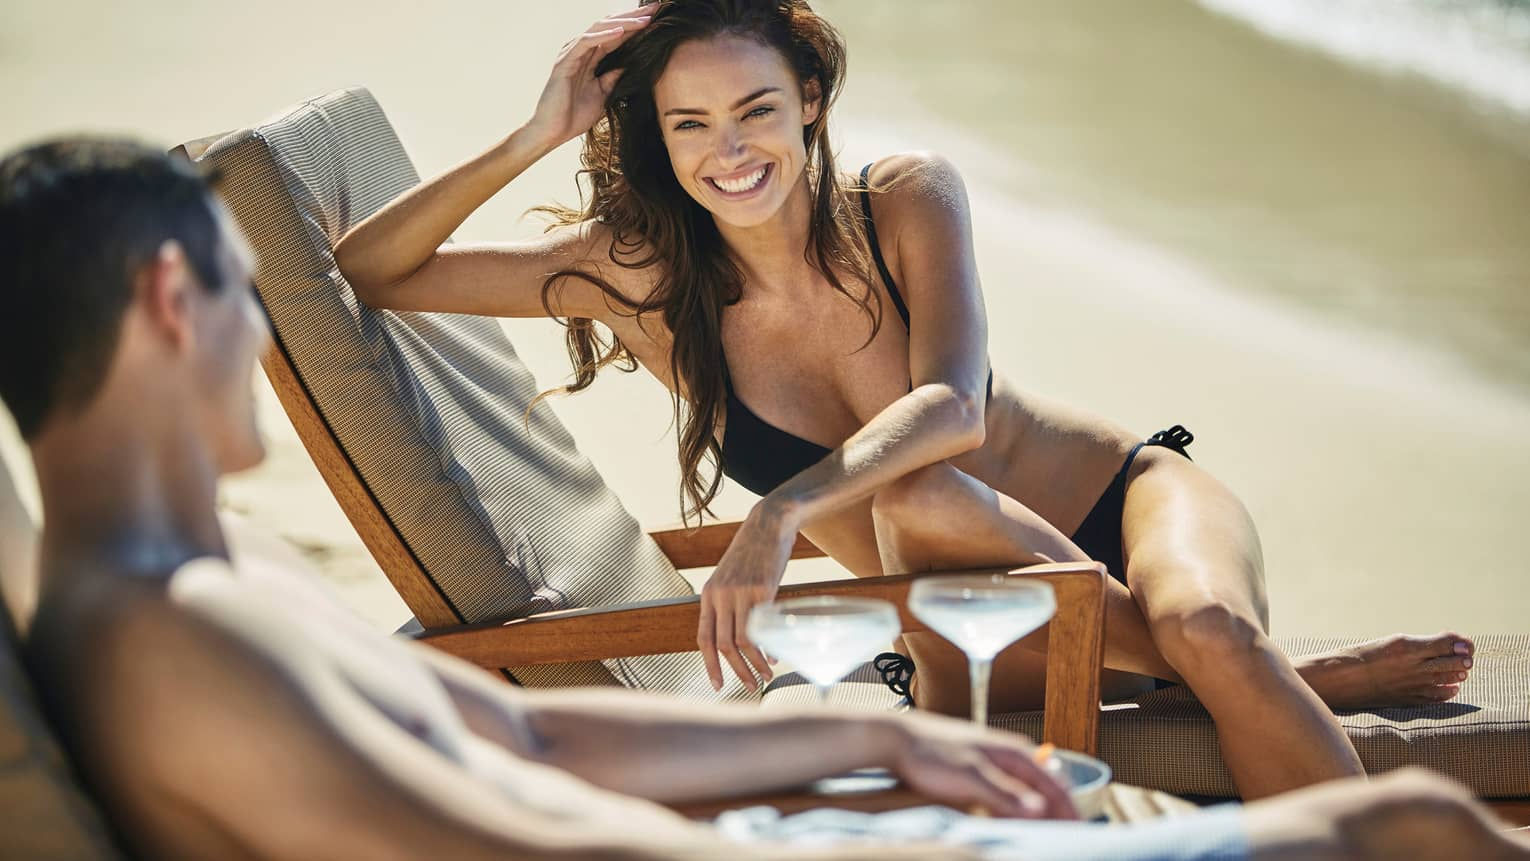 Smiling woman wearing black bikini sits on side of beach chair, faces man